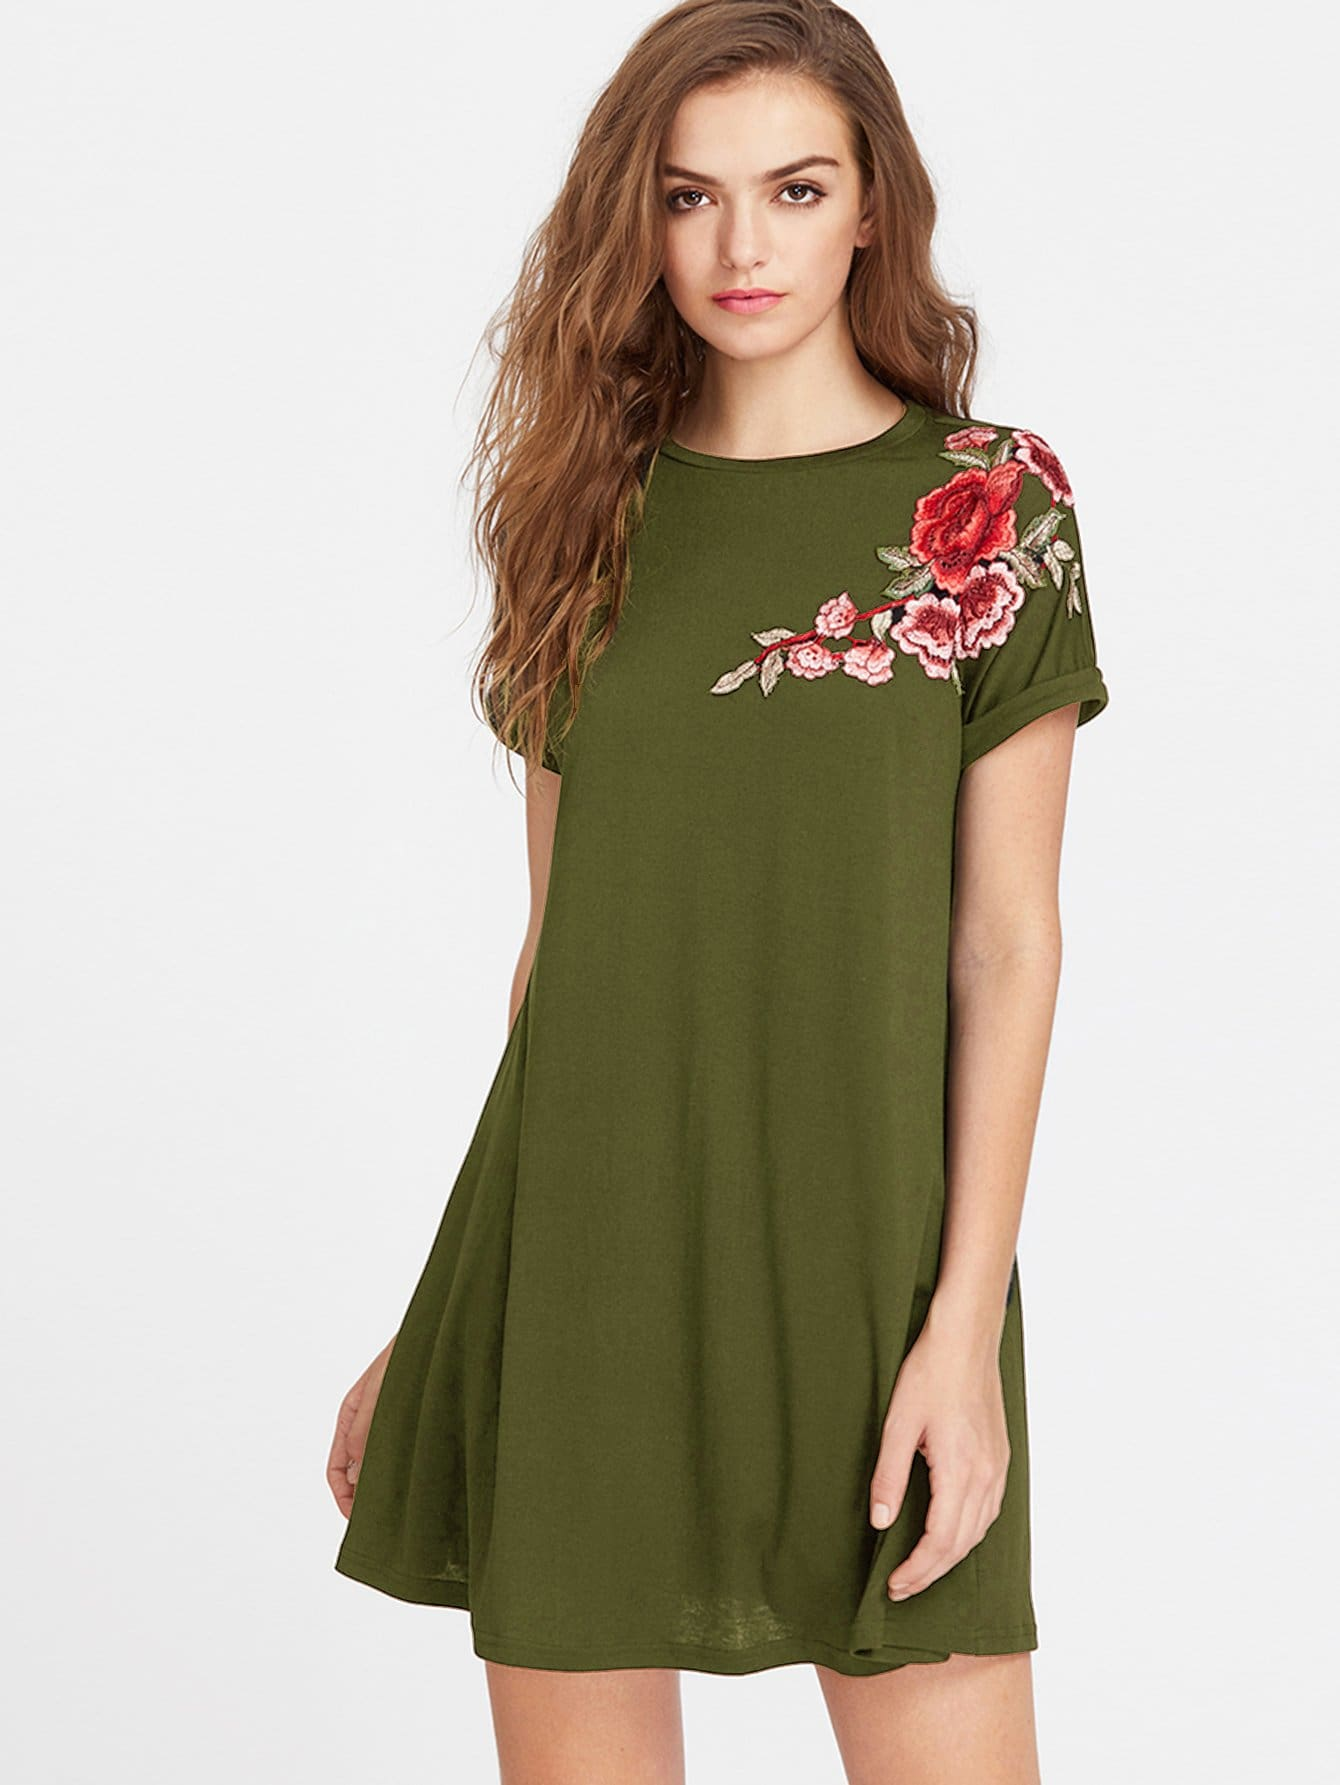 Embroidery Applique Cuffed Tee Dress embroidery applique knot back fitted